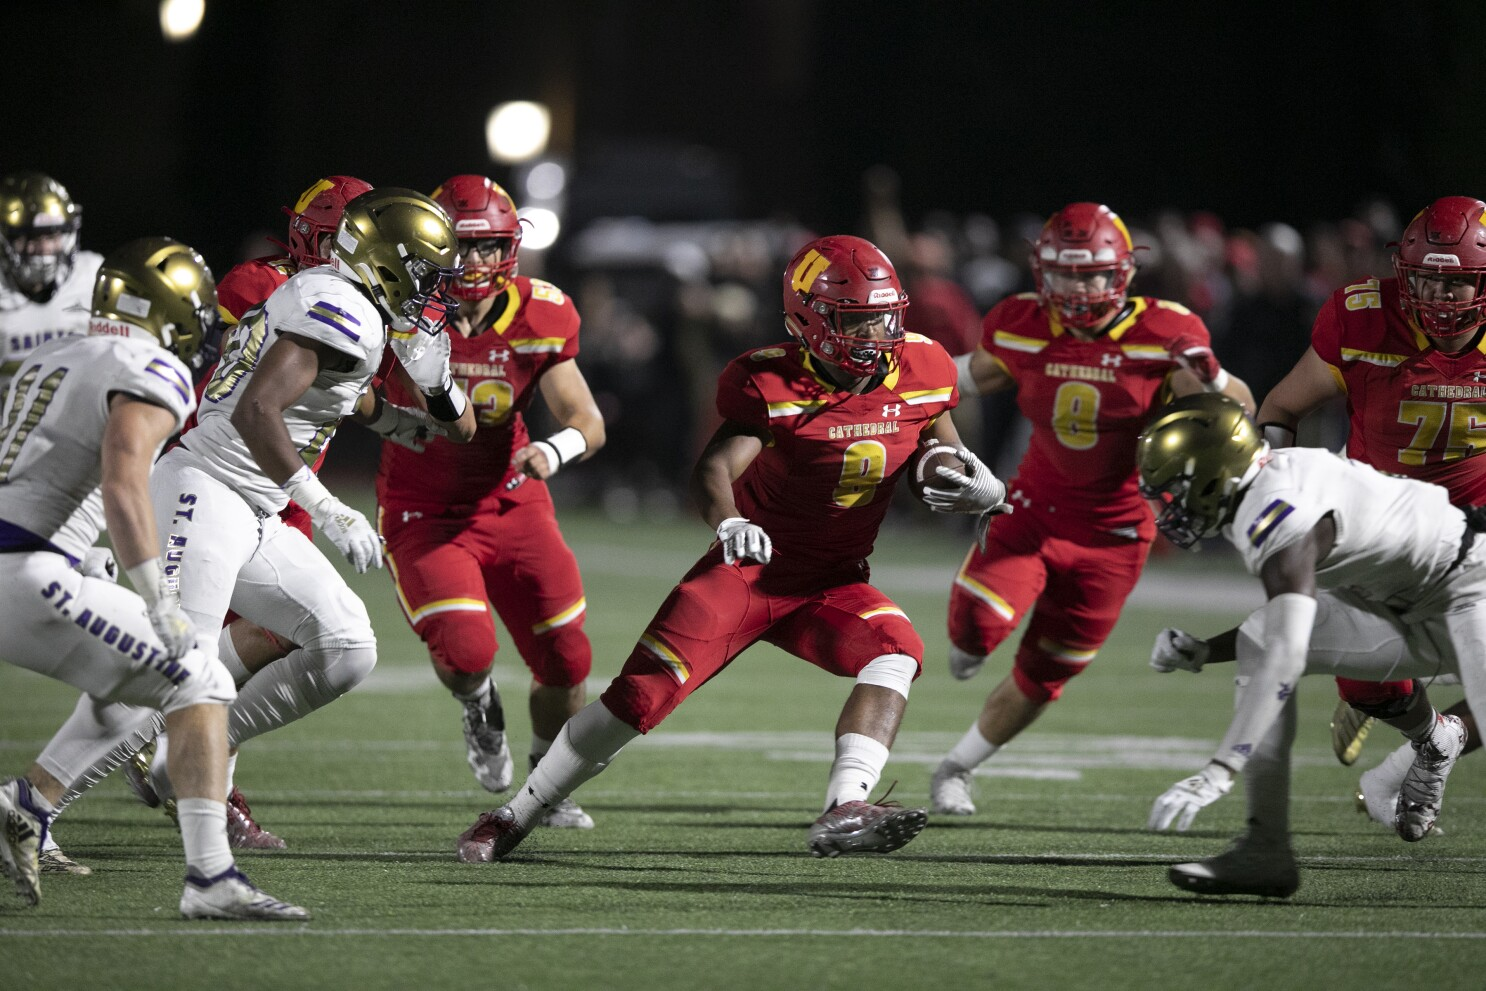 Dons' rally in fourth quarter buries rival Saints